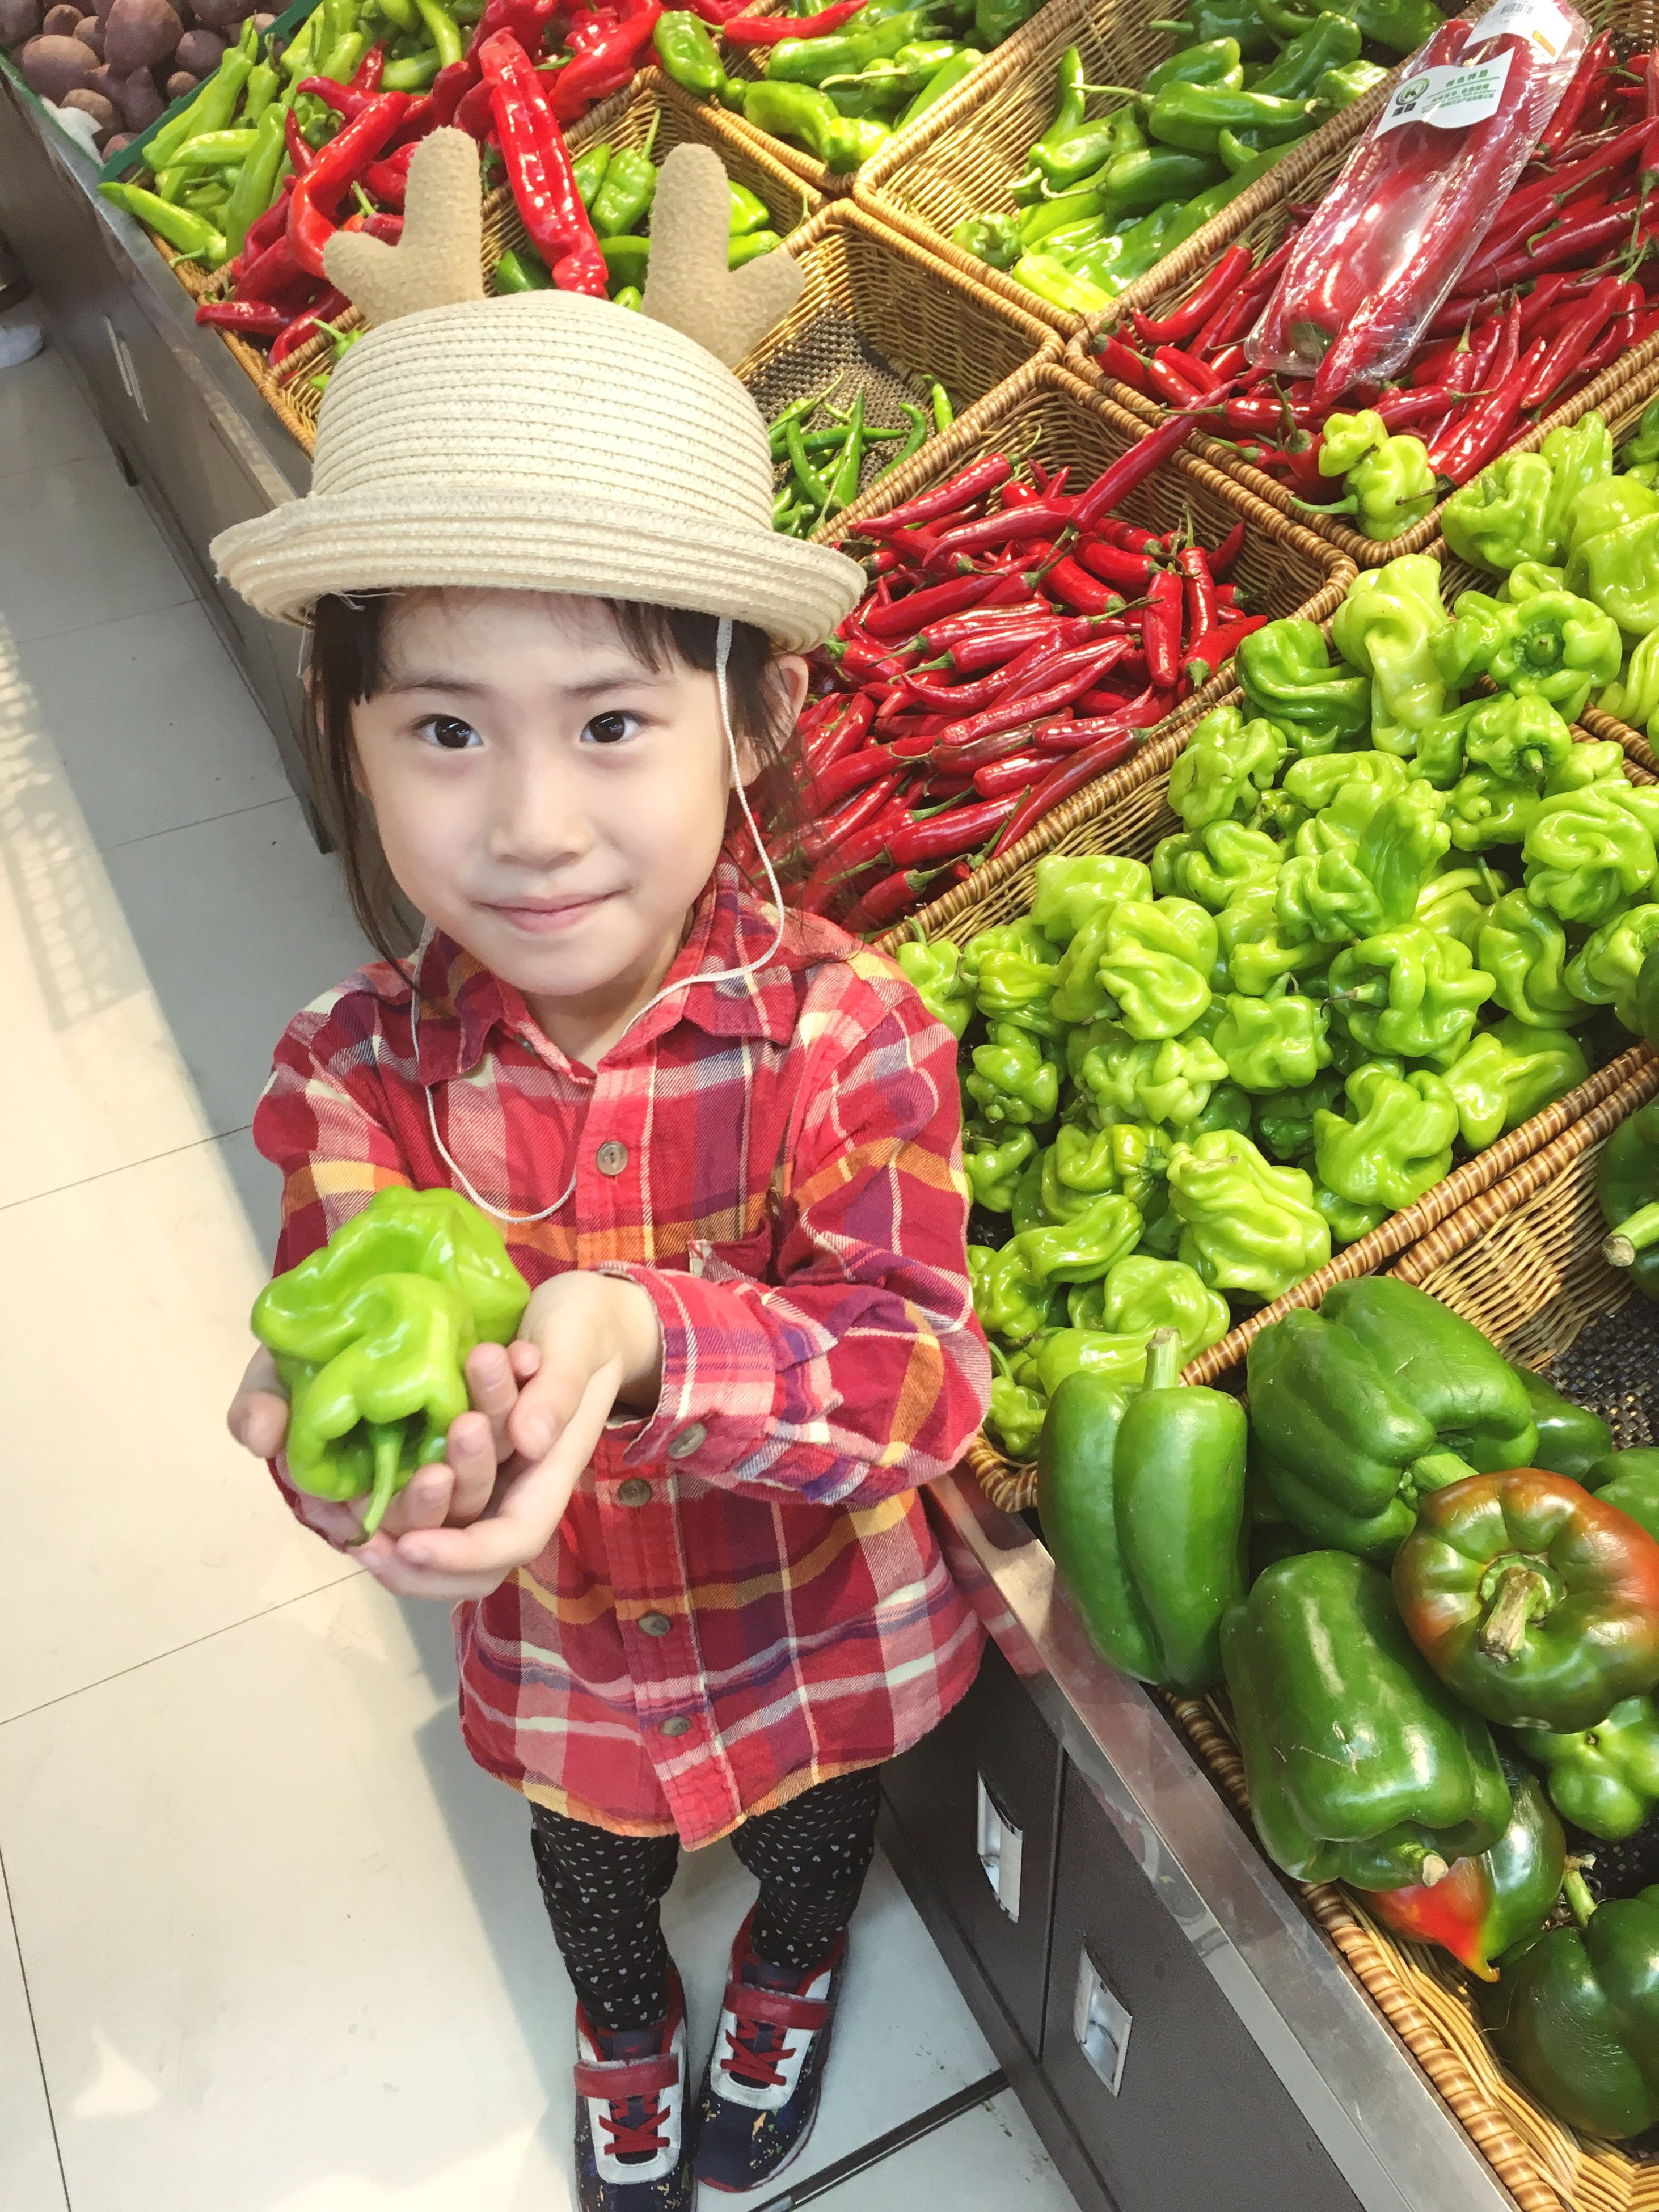 real people, looking at camera, portrait, vegetable, childhood, food and drink, elementary age, hat, one person, smiling, lifestyles, red, cute, food, front view, day, boys, happiness, leisure activity, fruit, outdoors, freshness, healthy eating